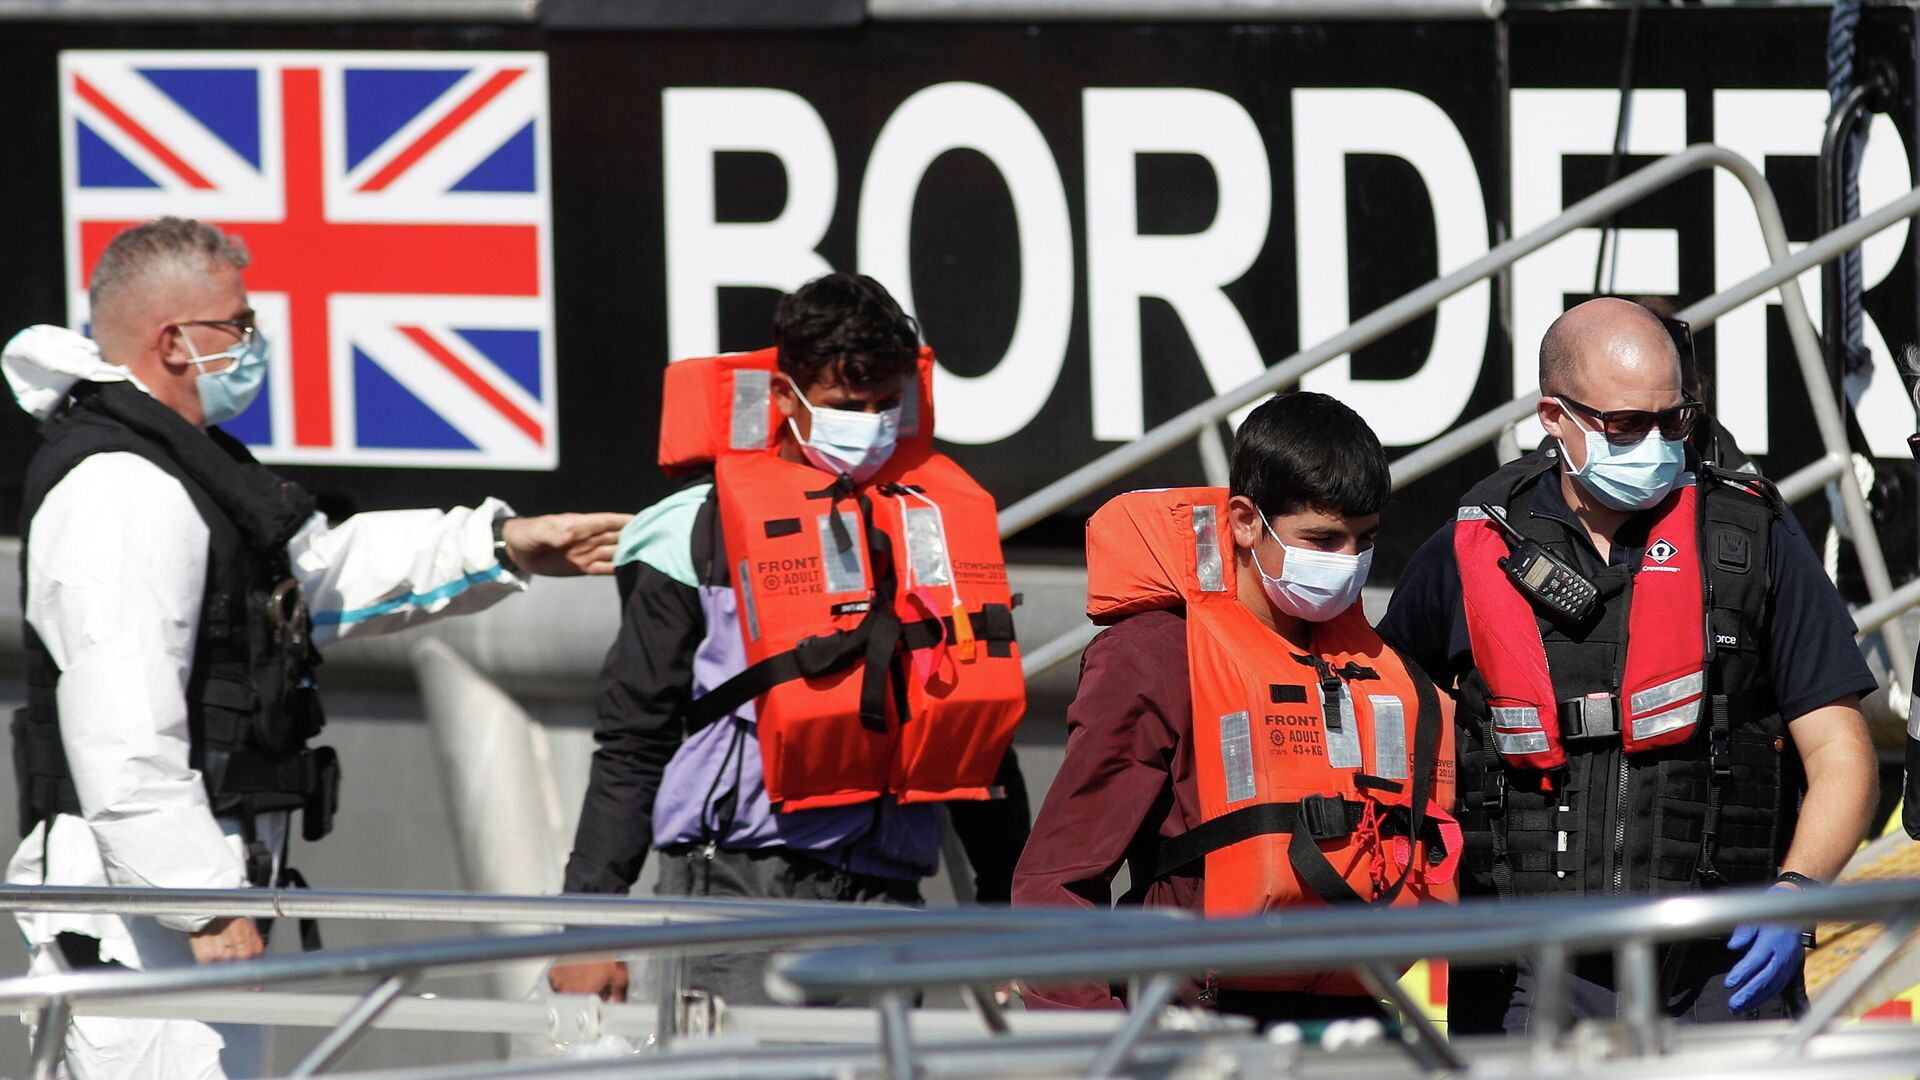 Migrants rescued from the English Channel are brought into Dover on the Border Force Catamaran Rescue Boat, BF Hurricane, Britain, September 8, 2021 - Sputnik International, 1920, 20.09.2021